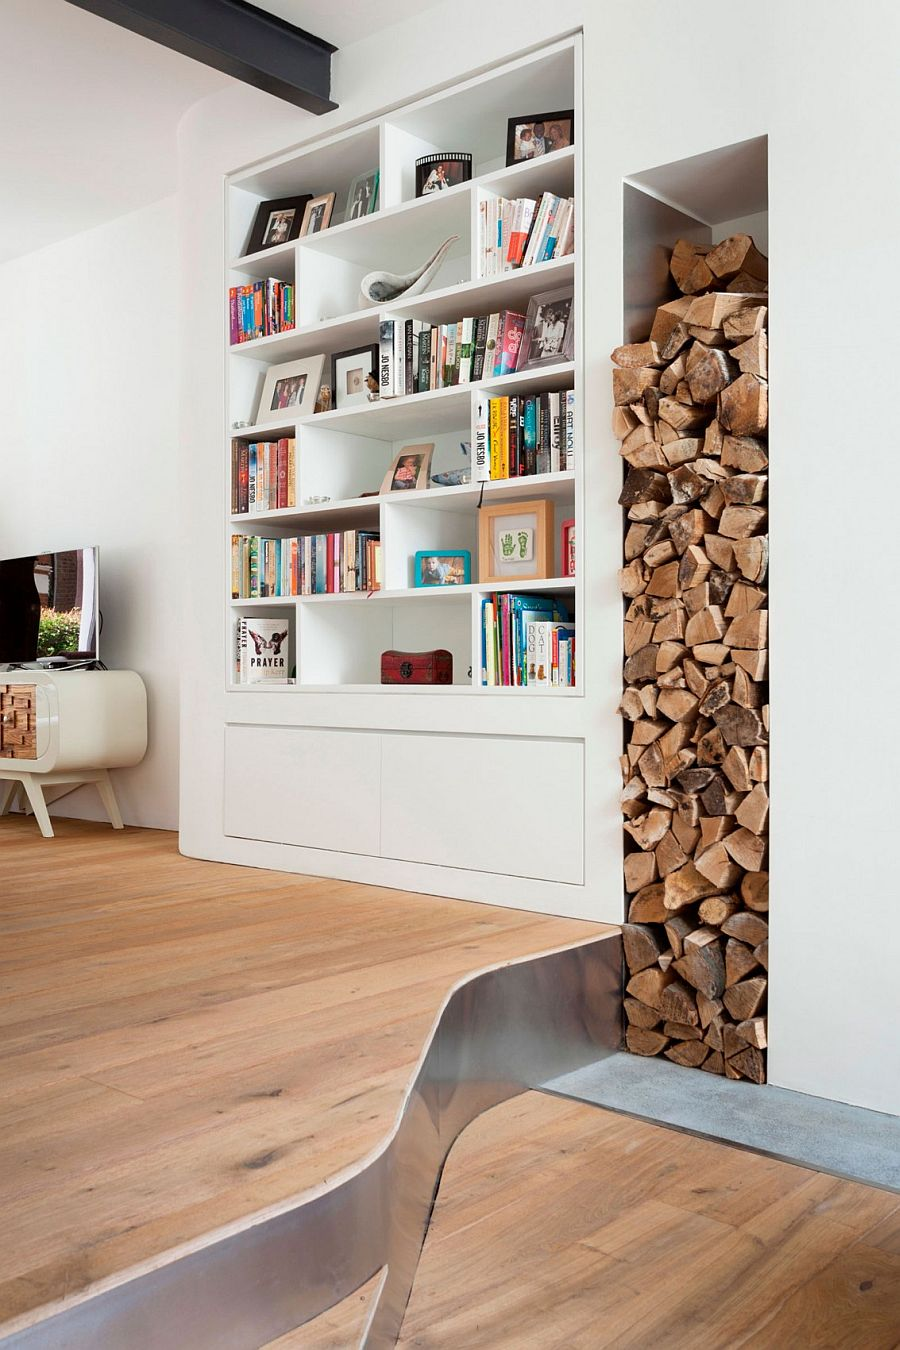 Stacked wood adds textural contrast to the interior